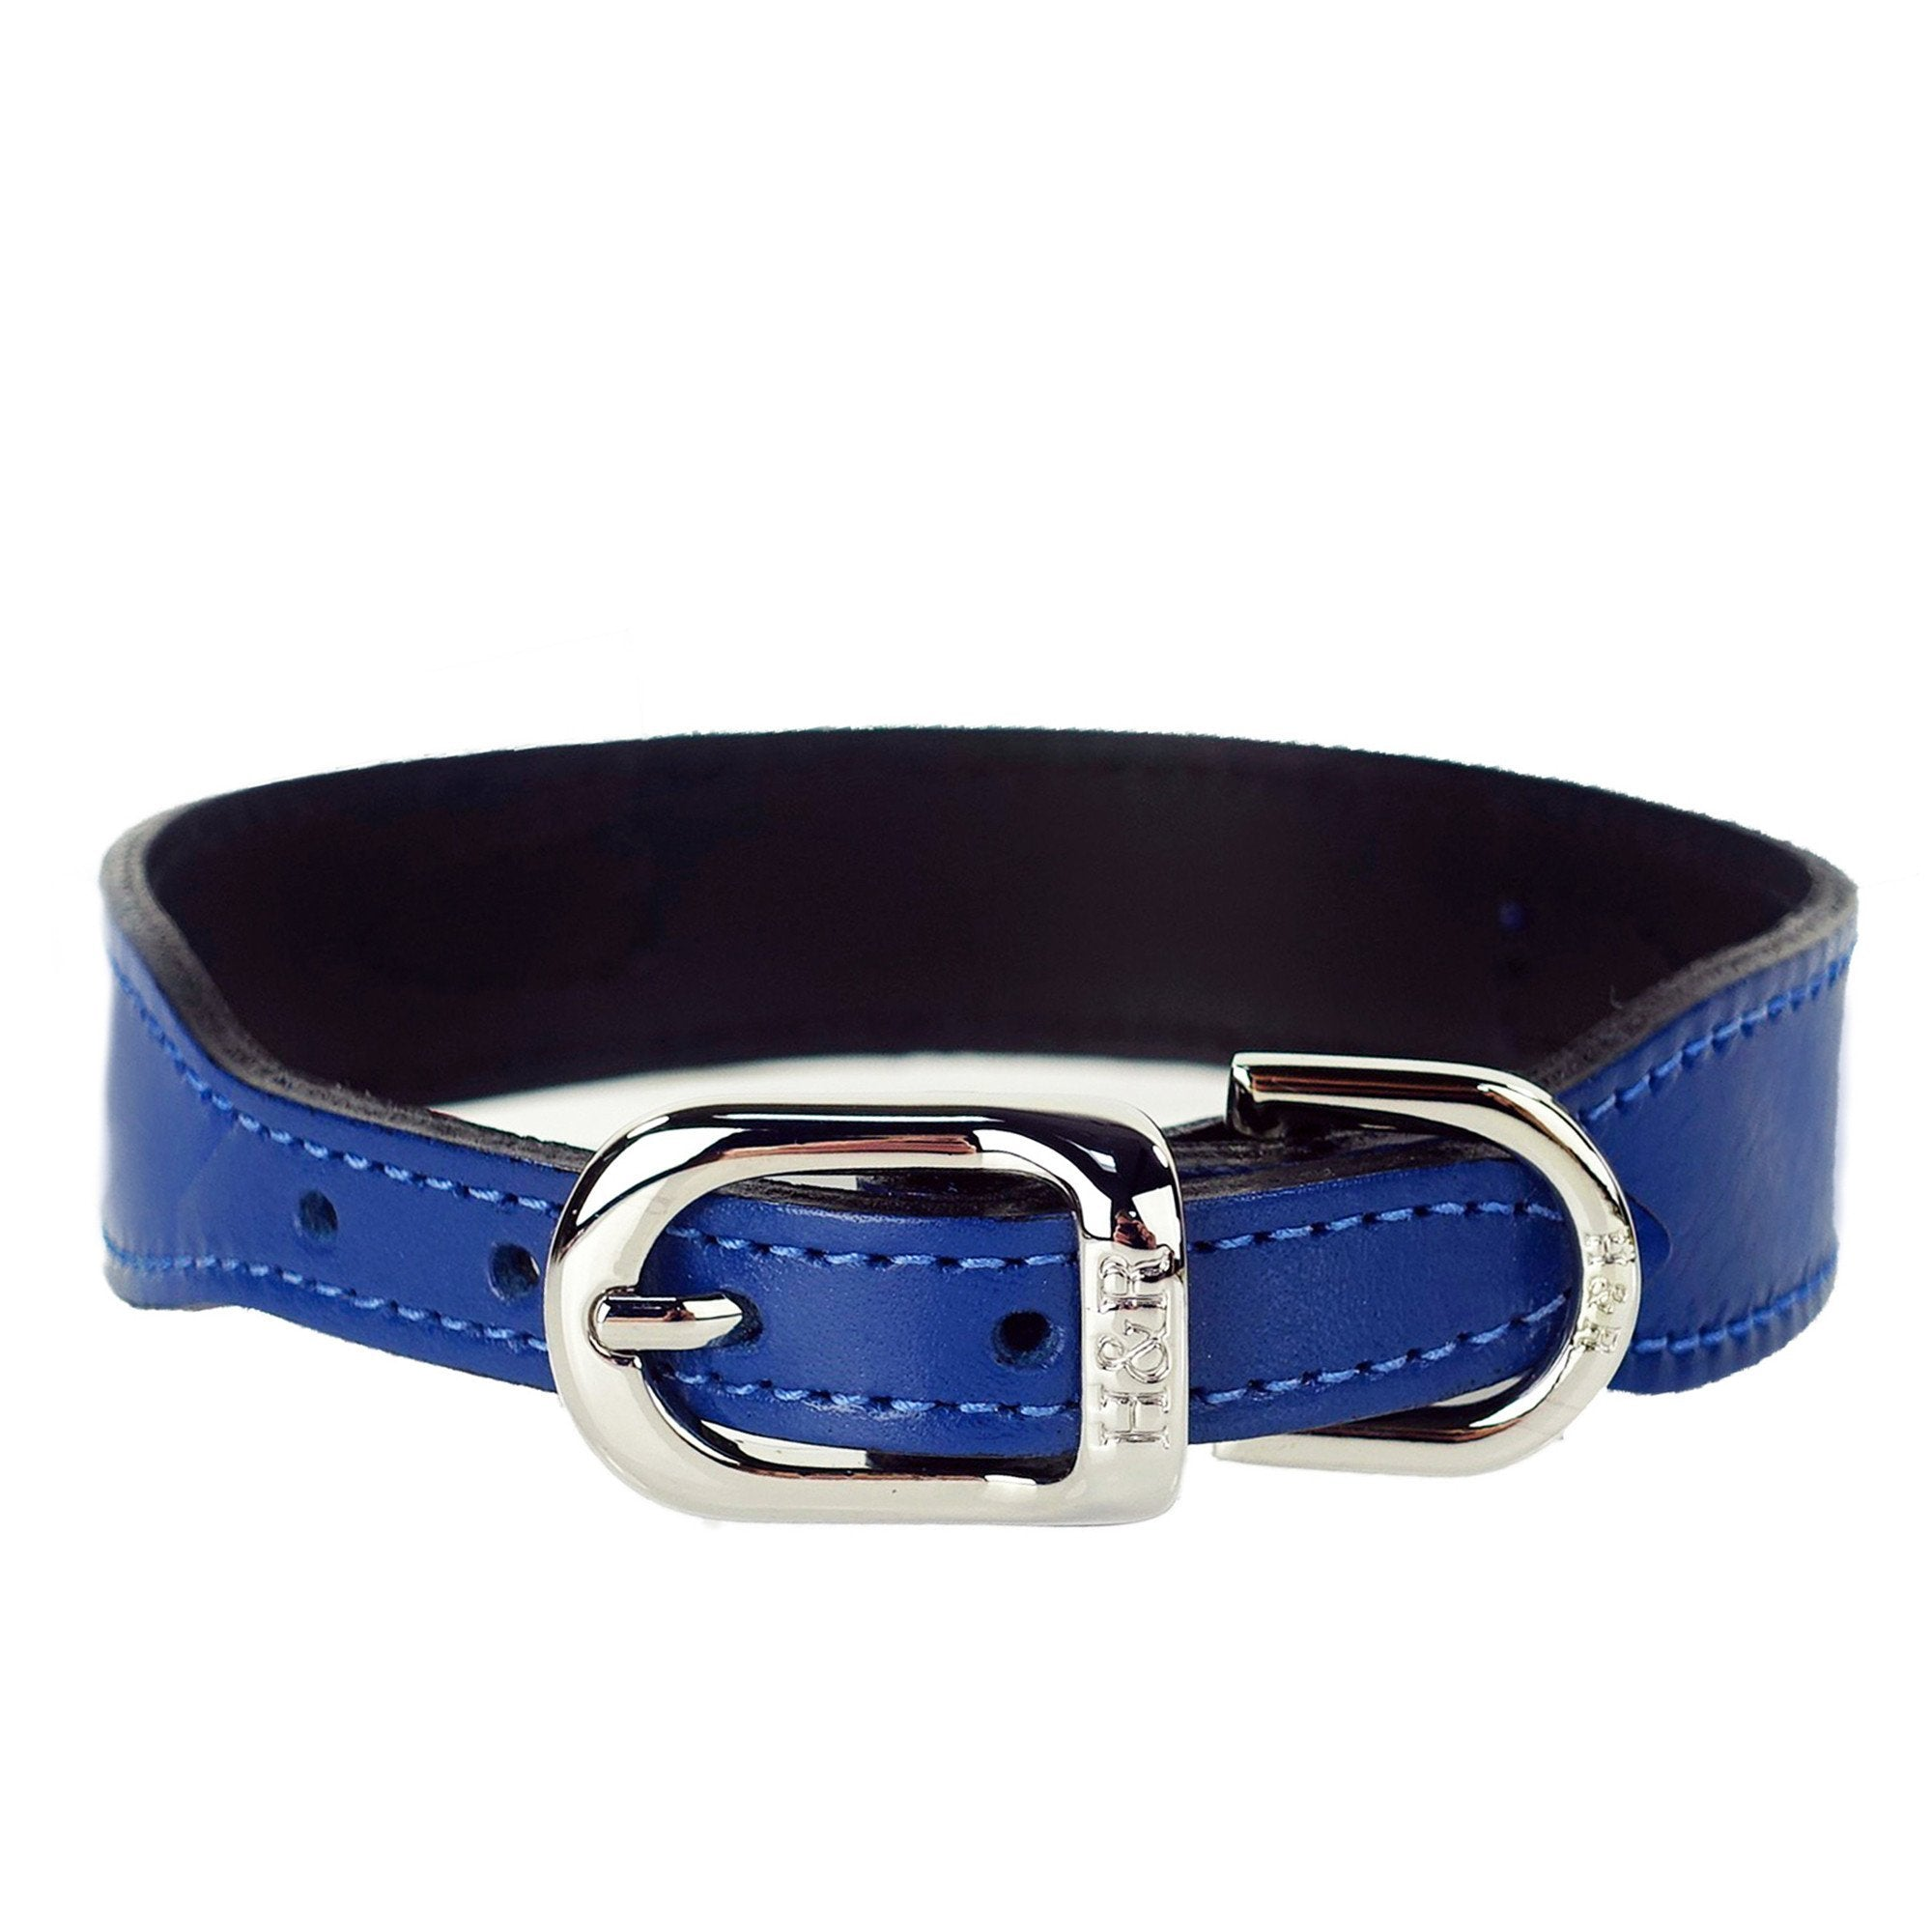 Hartman & Rose Designer Dog Collar in Italian Cobalt Blue Leather with Nickel Hardware